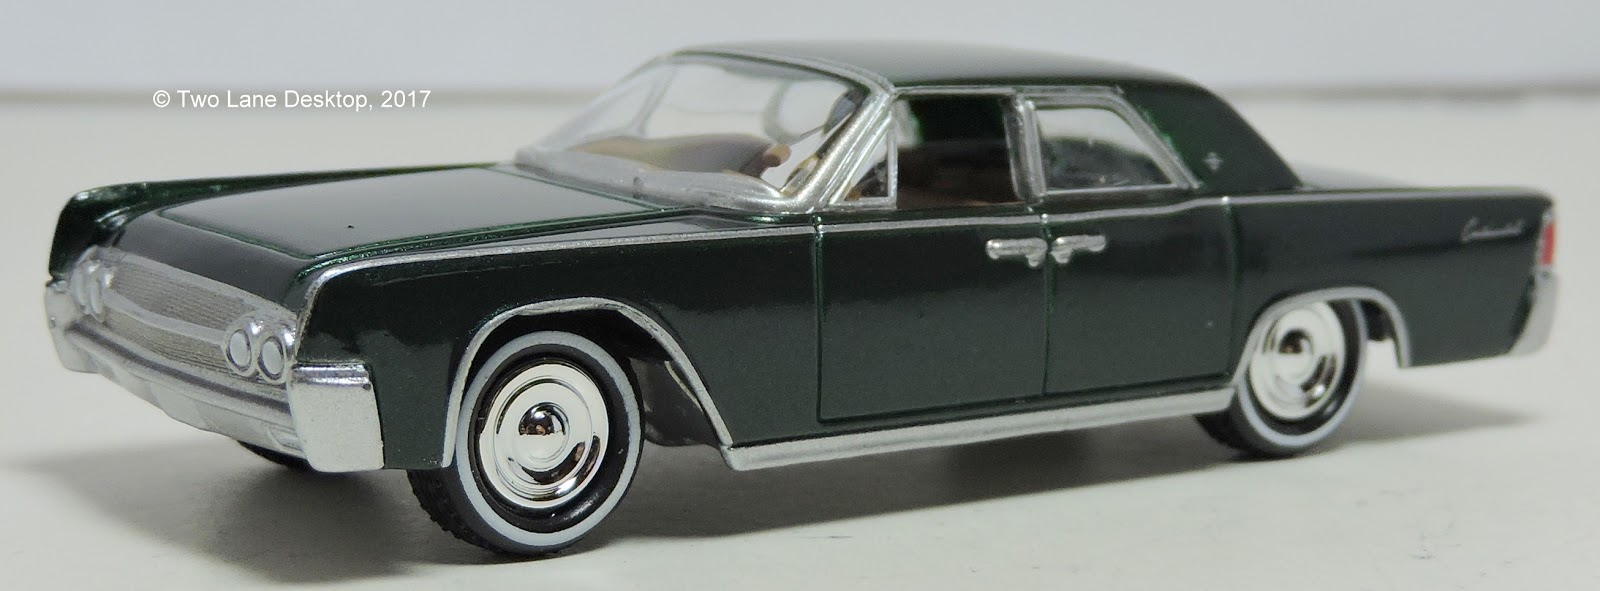 two lane desktop johnny lightning 1961 coupe and hot wheels 1964 lincoln continental convertible. Black Bedroom Furniture Sets. Home Design Ideas